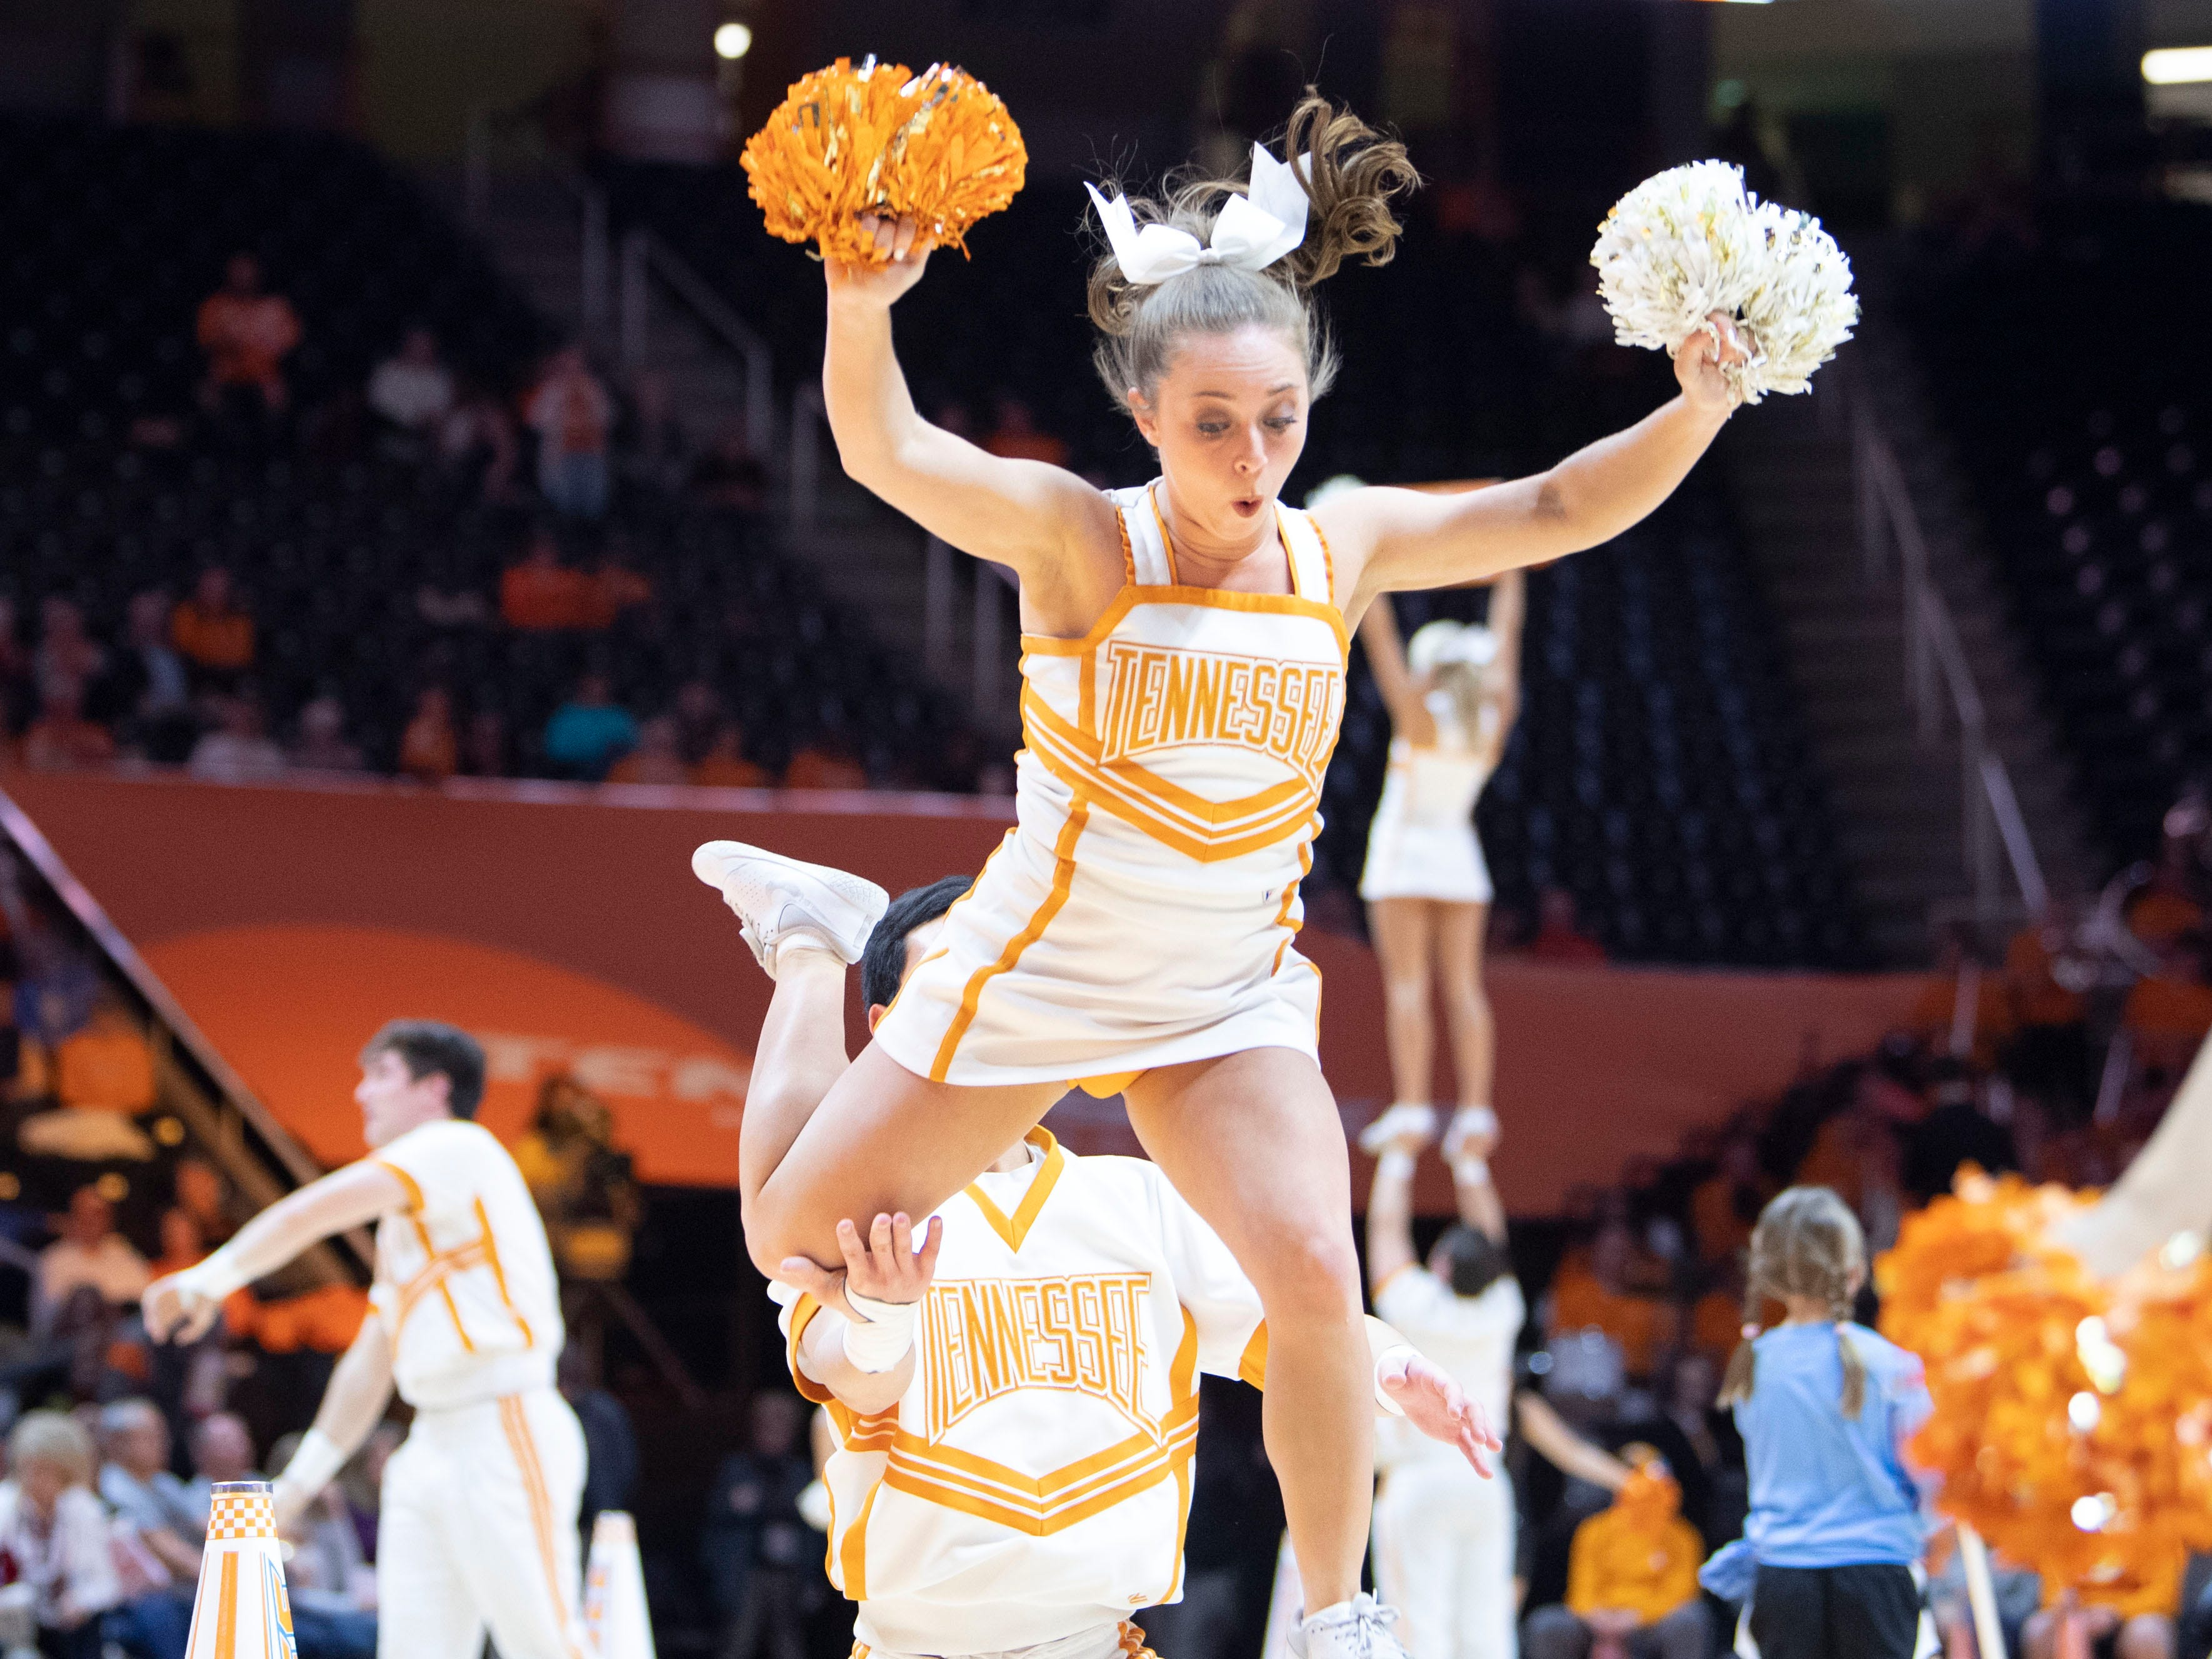 A Tennessee cheerleader loses her balance while performing at the Lady Vols and Auburn game on Thursday, February 14, 2019. She landed safely.